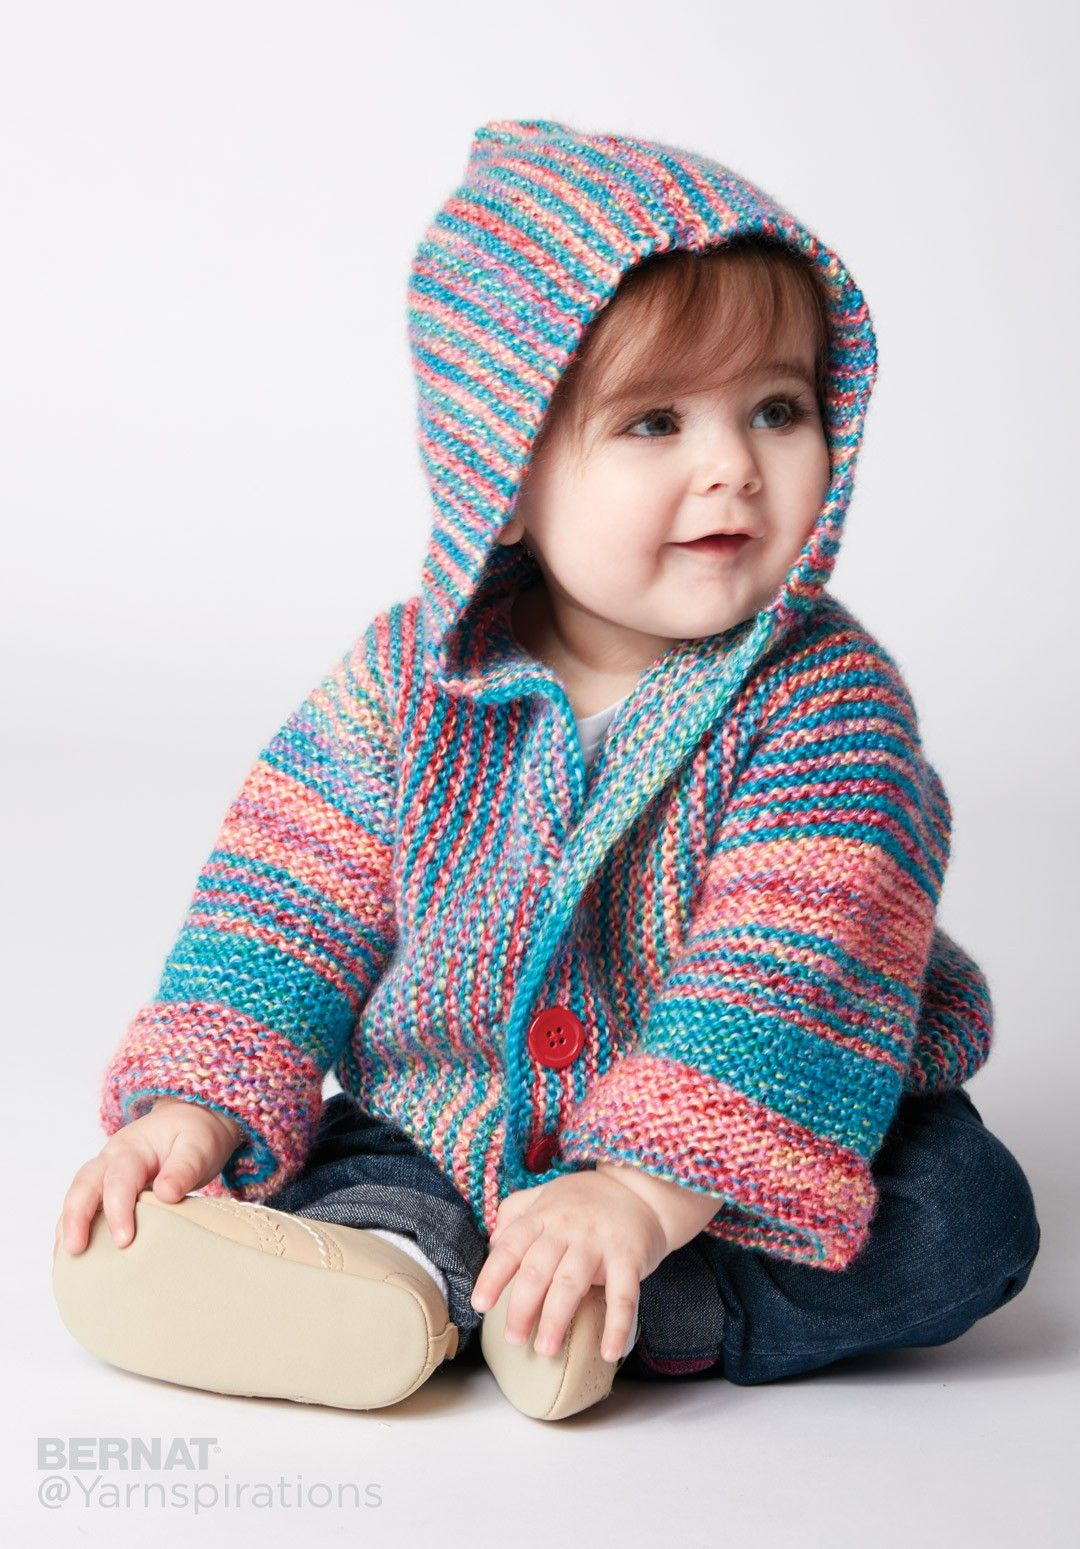 Show Your Stripes Knit Jacket | Knitting: Baby Clothes | Pinterest ...